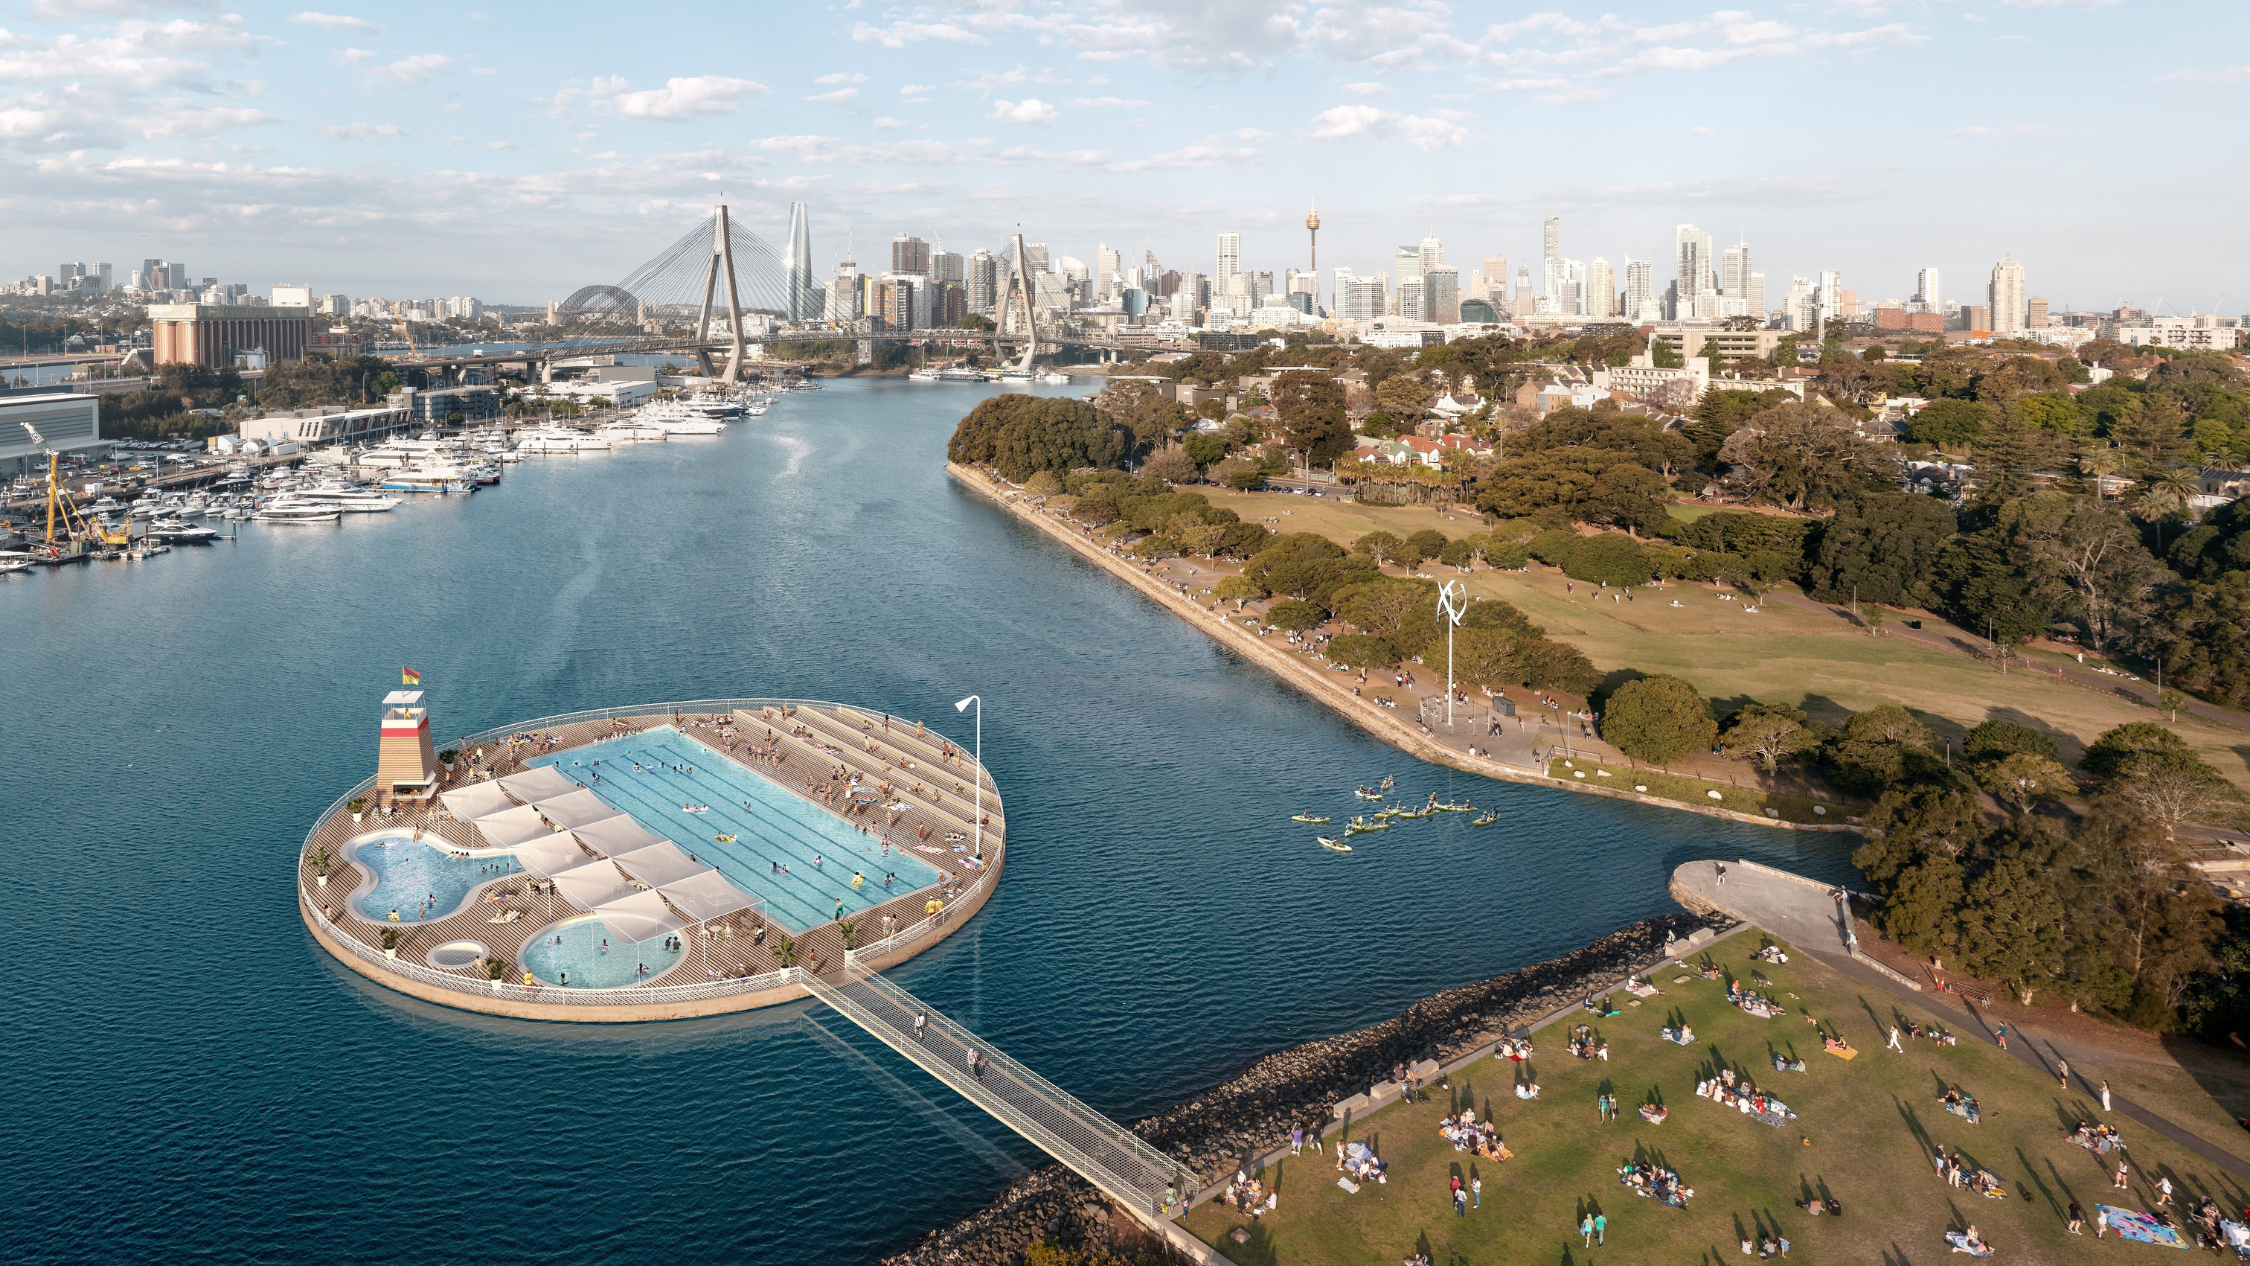 There's an ambitious new plan to make Sydney Harbour into a 'swimmer's paradise'